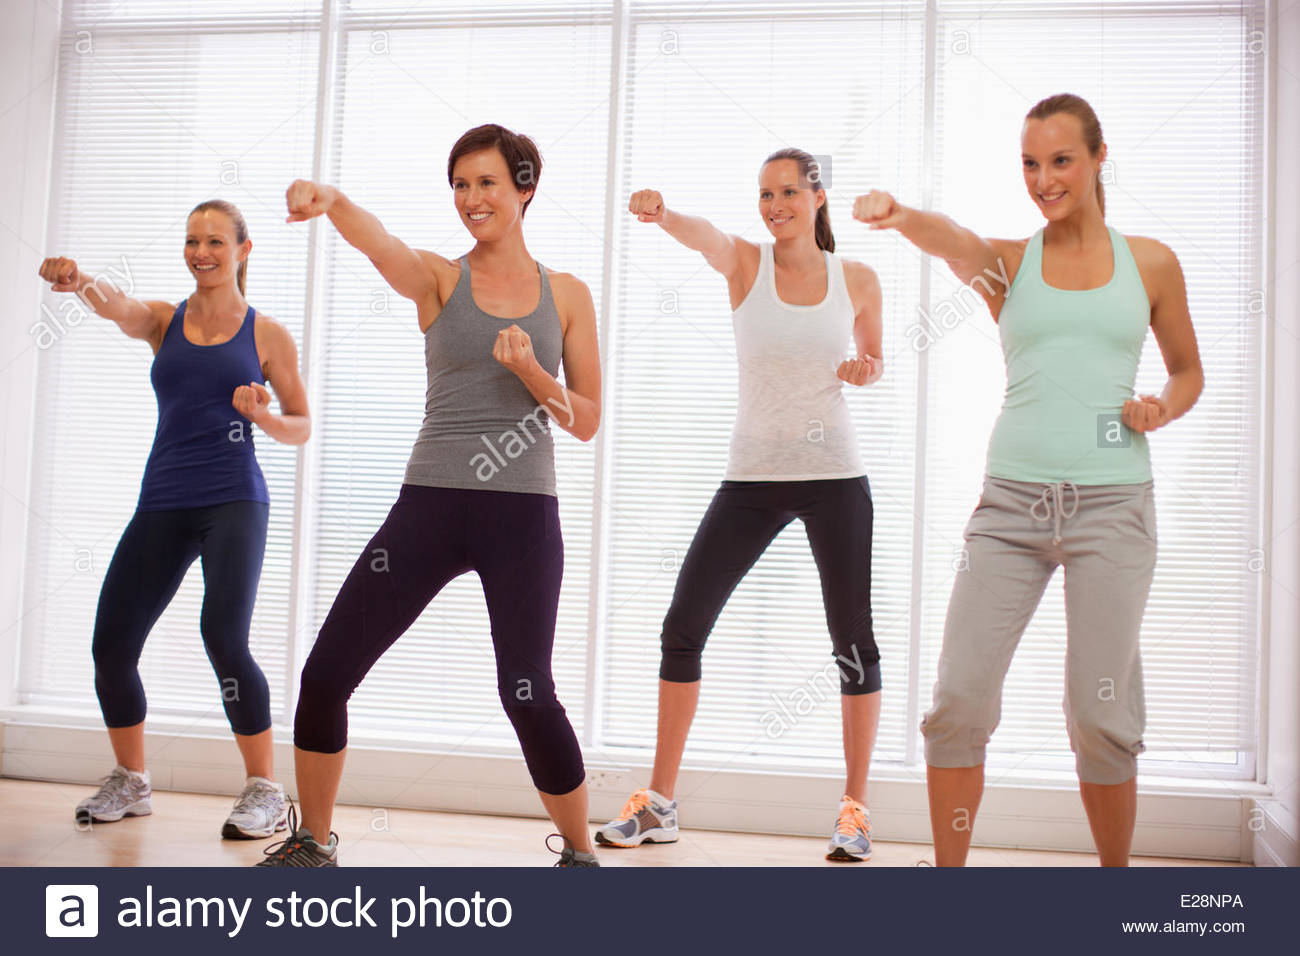 Smiling women in exercise class - Stock Image